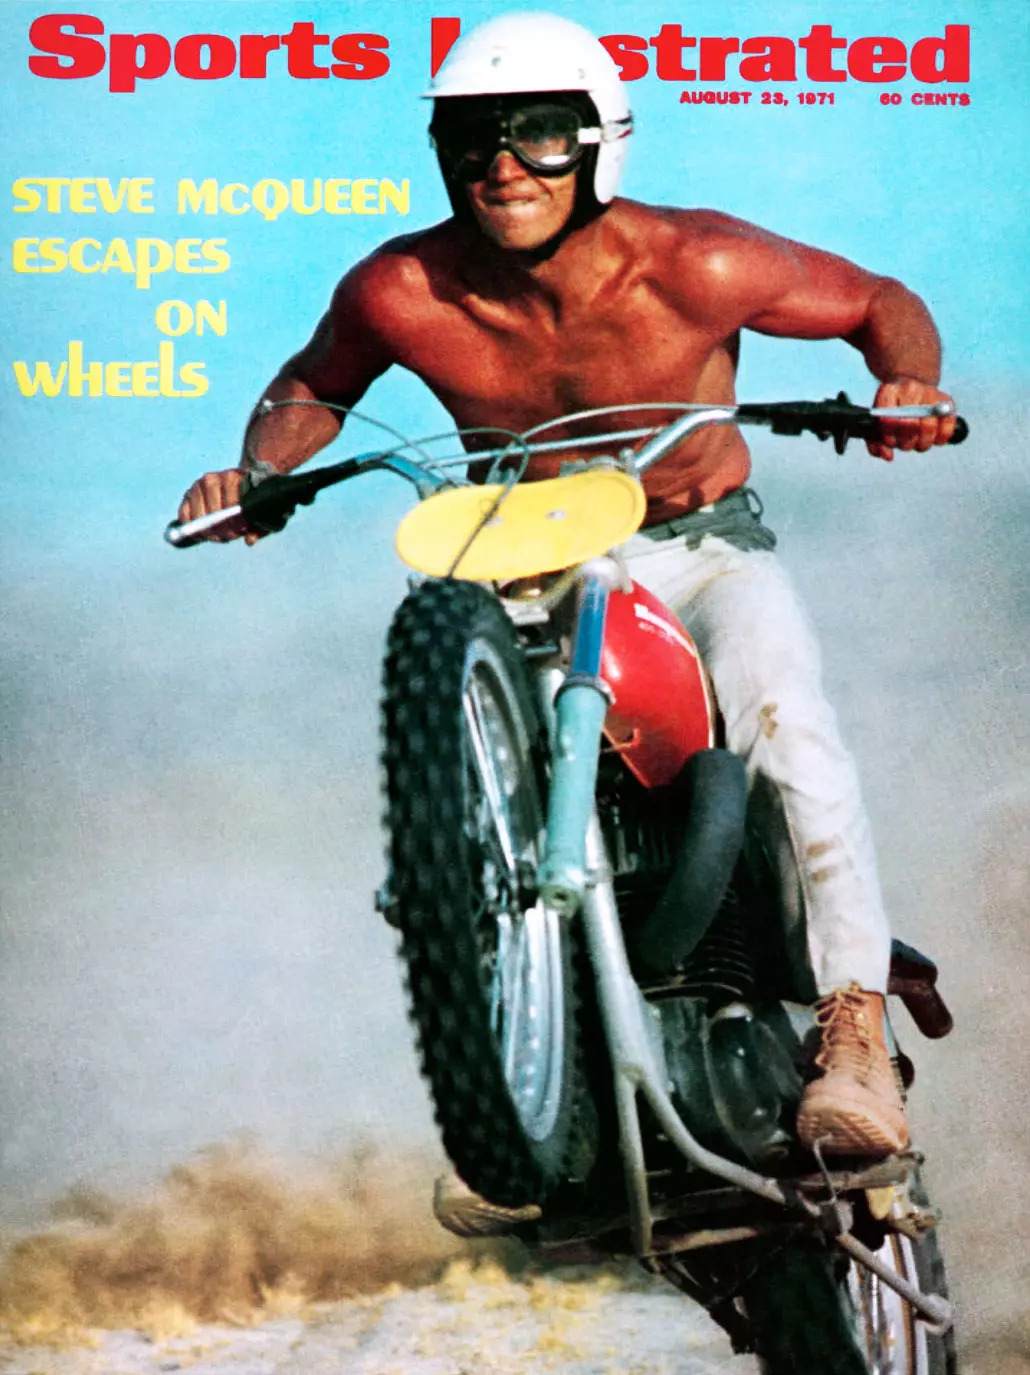 Steve McQueen on the front cover of the Sports Illustrated magazine, featuring his iconic Husqvarna 400 Cross Motorcycle